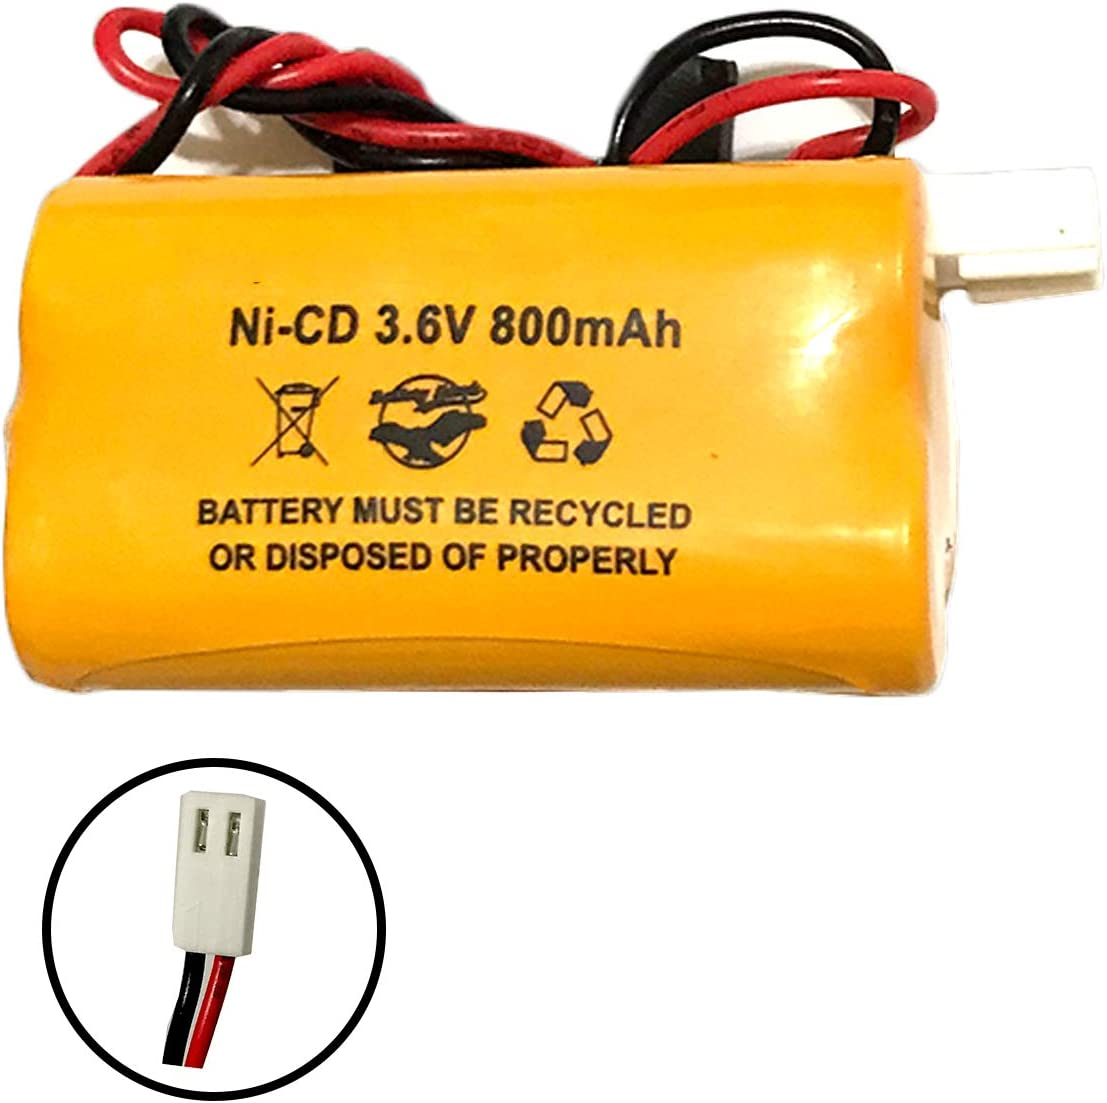 100003A098 Chloride 930023 930D23 Self Power Ni-CD 3.6v AA 800mAh Battery Pack Replacement for Emergency//Exit Light